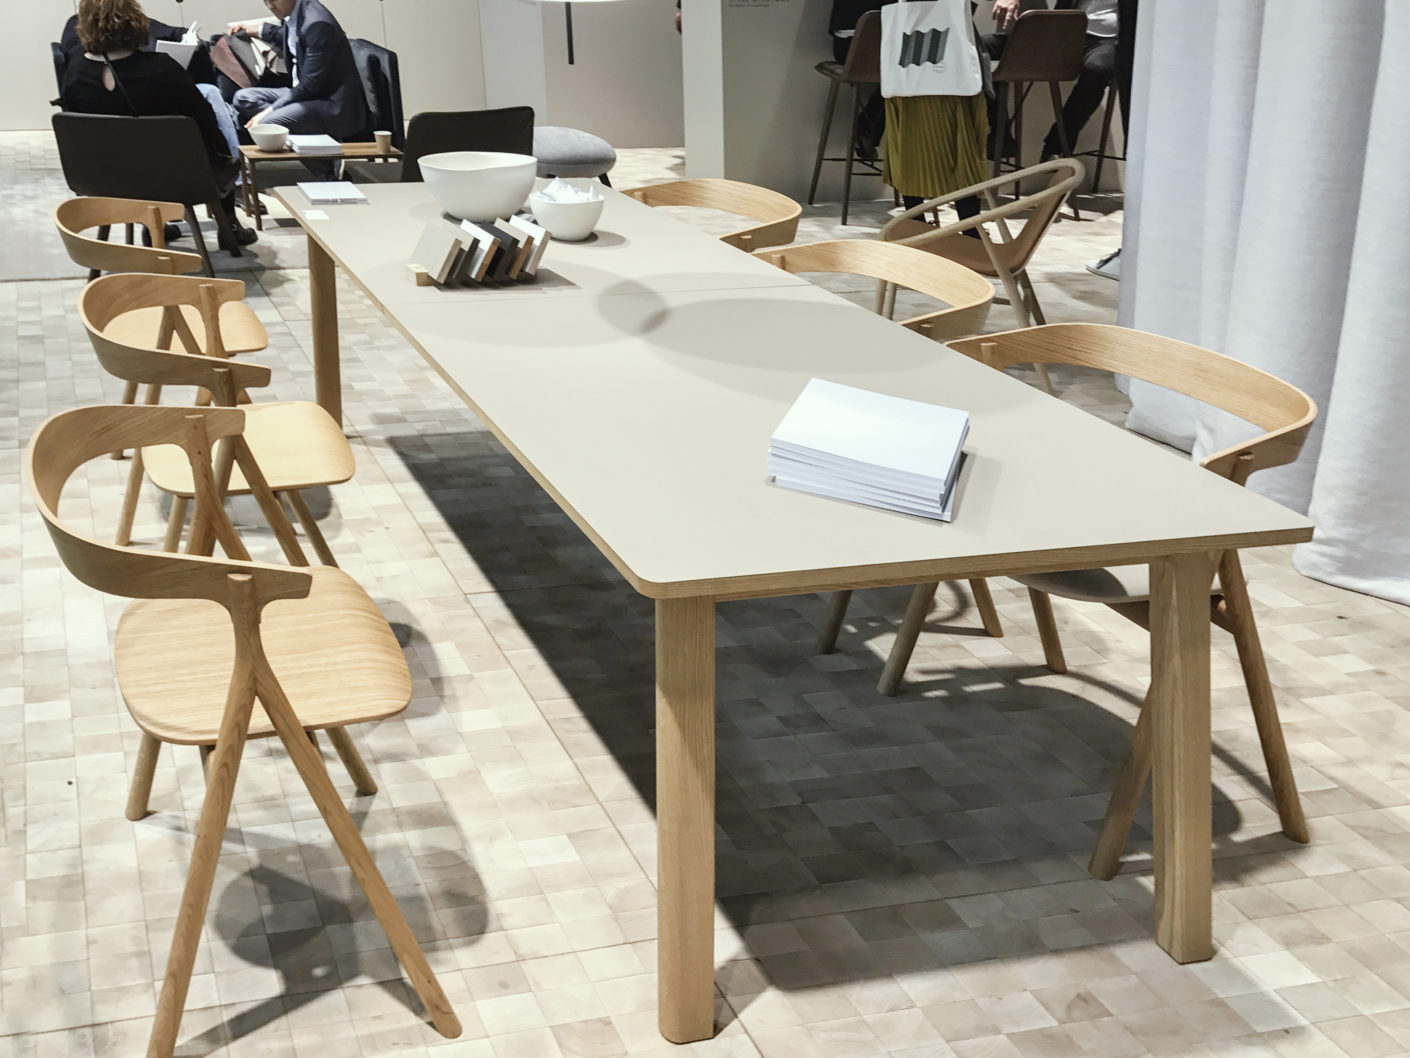 Stockholm, Furniture and Light Fair 2018, Fredericia, Ana, Yksi, Stylepark